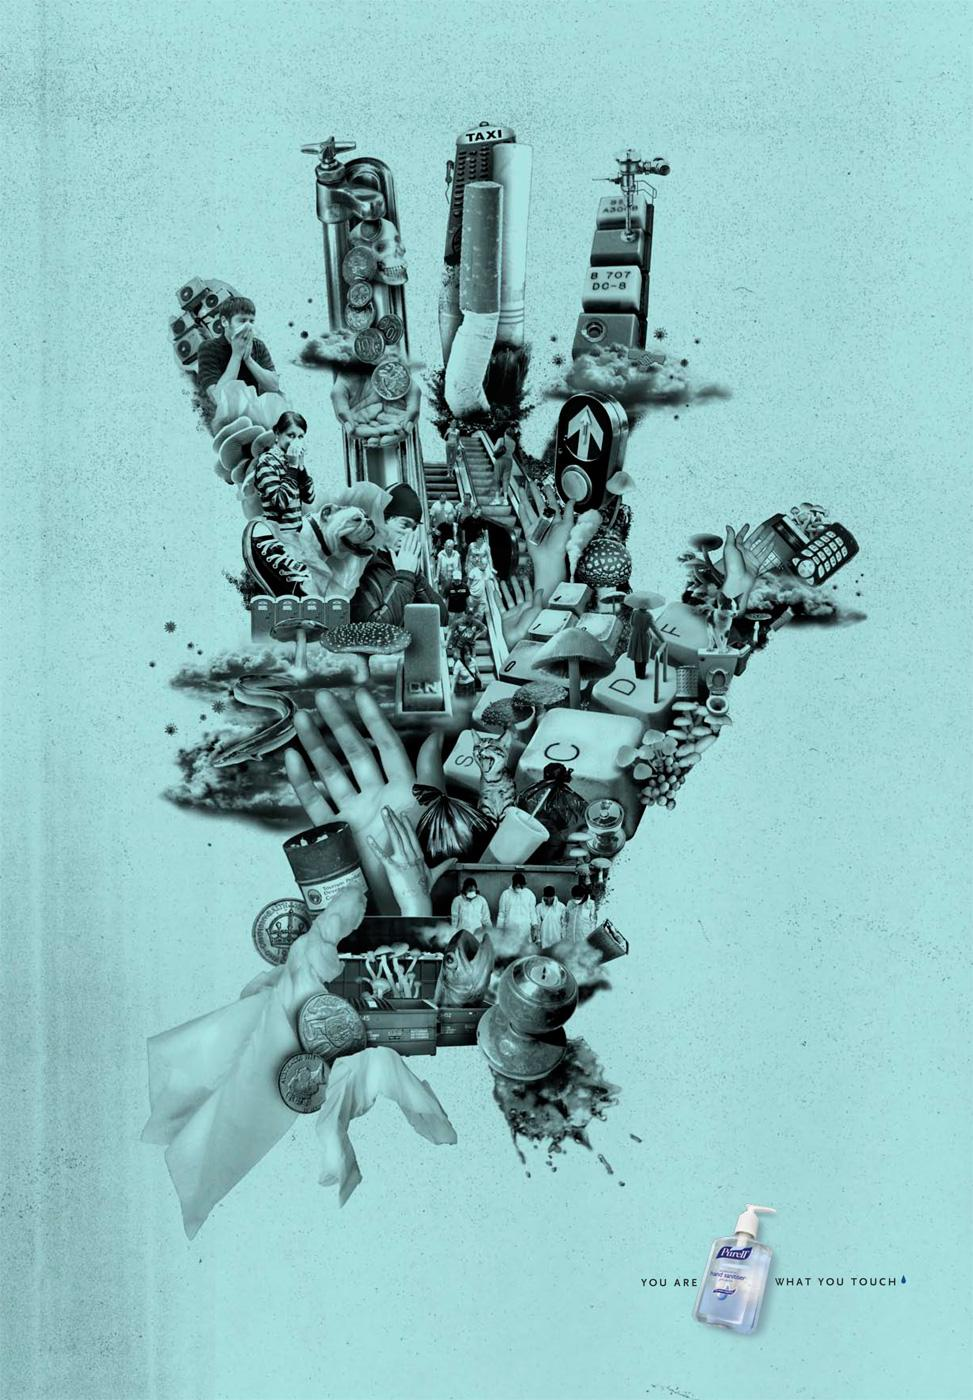 Purell Print Ad -  You are what you touch, 3